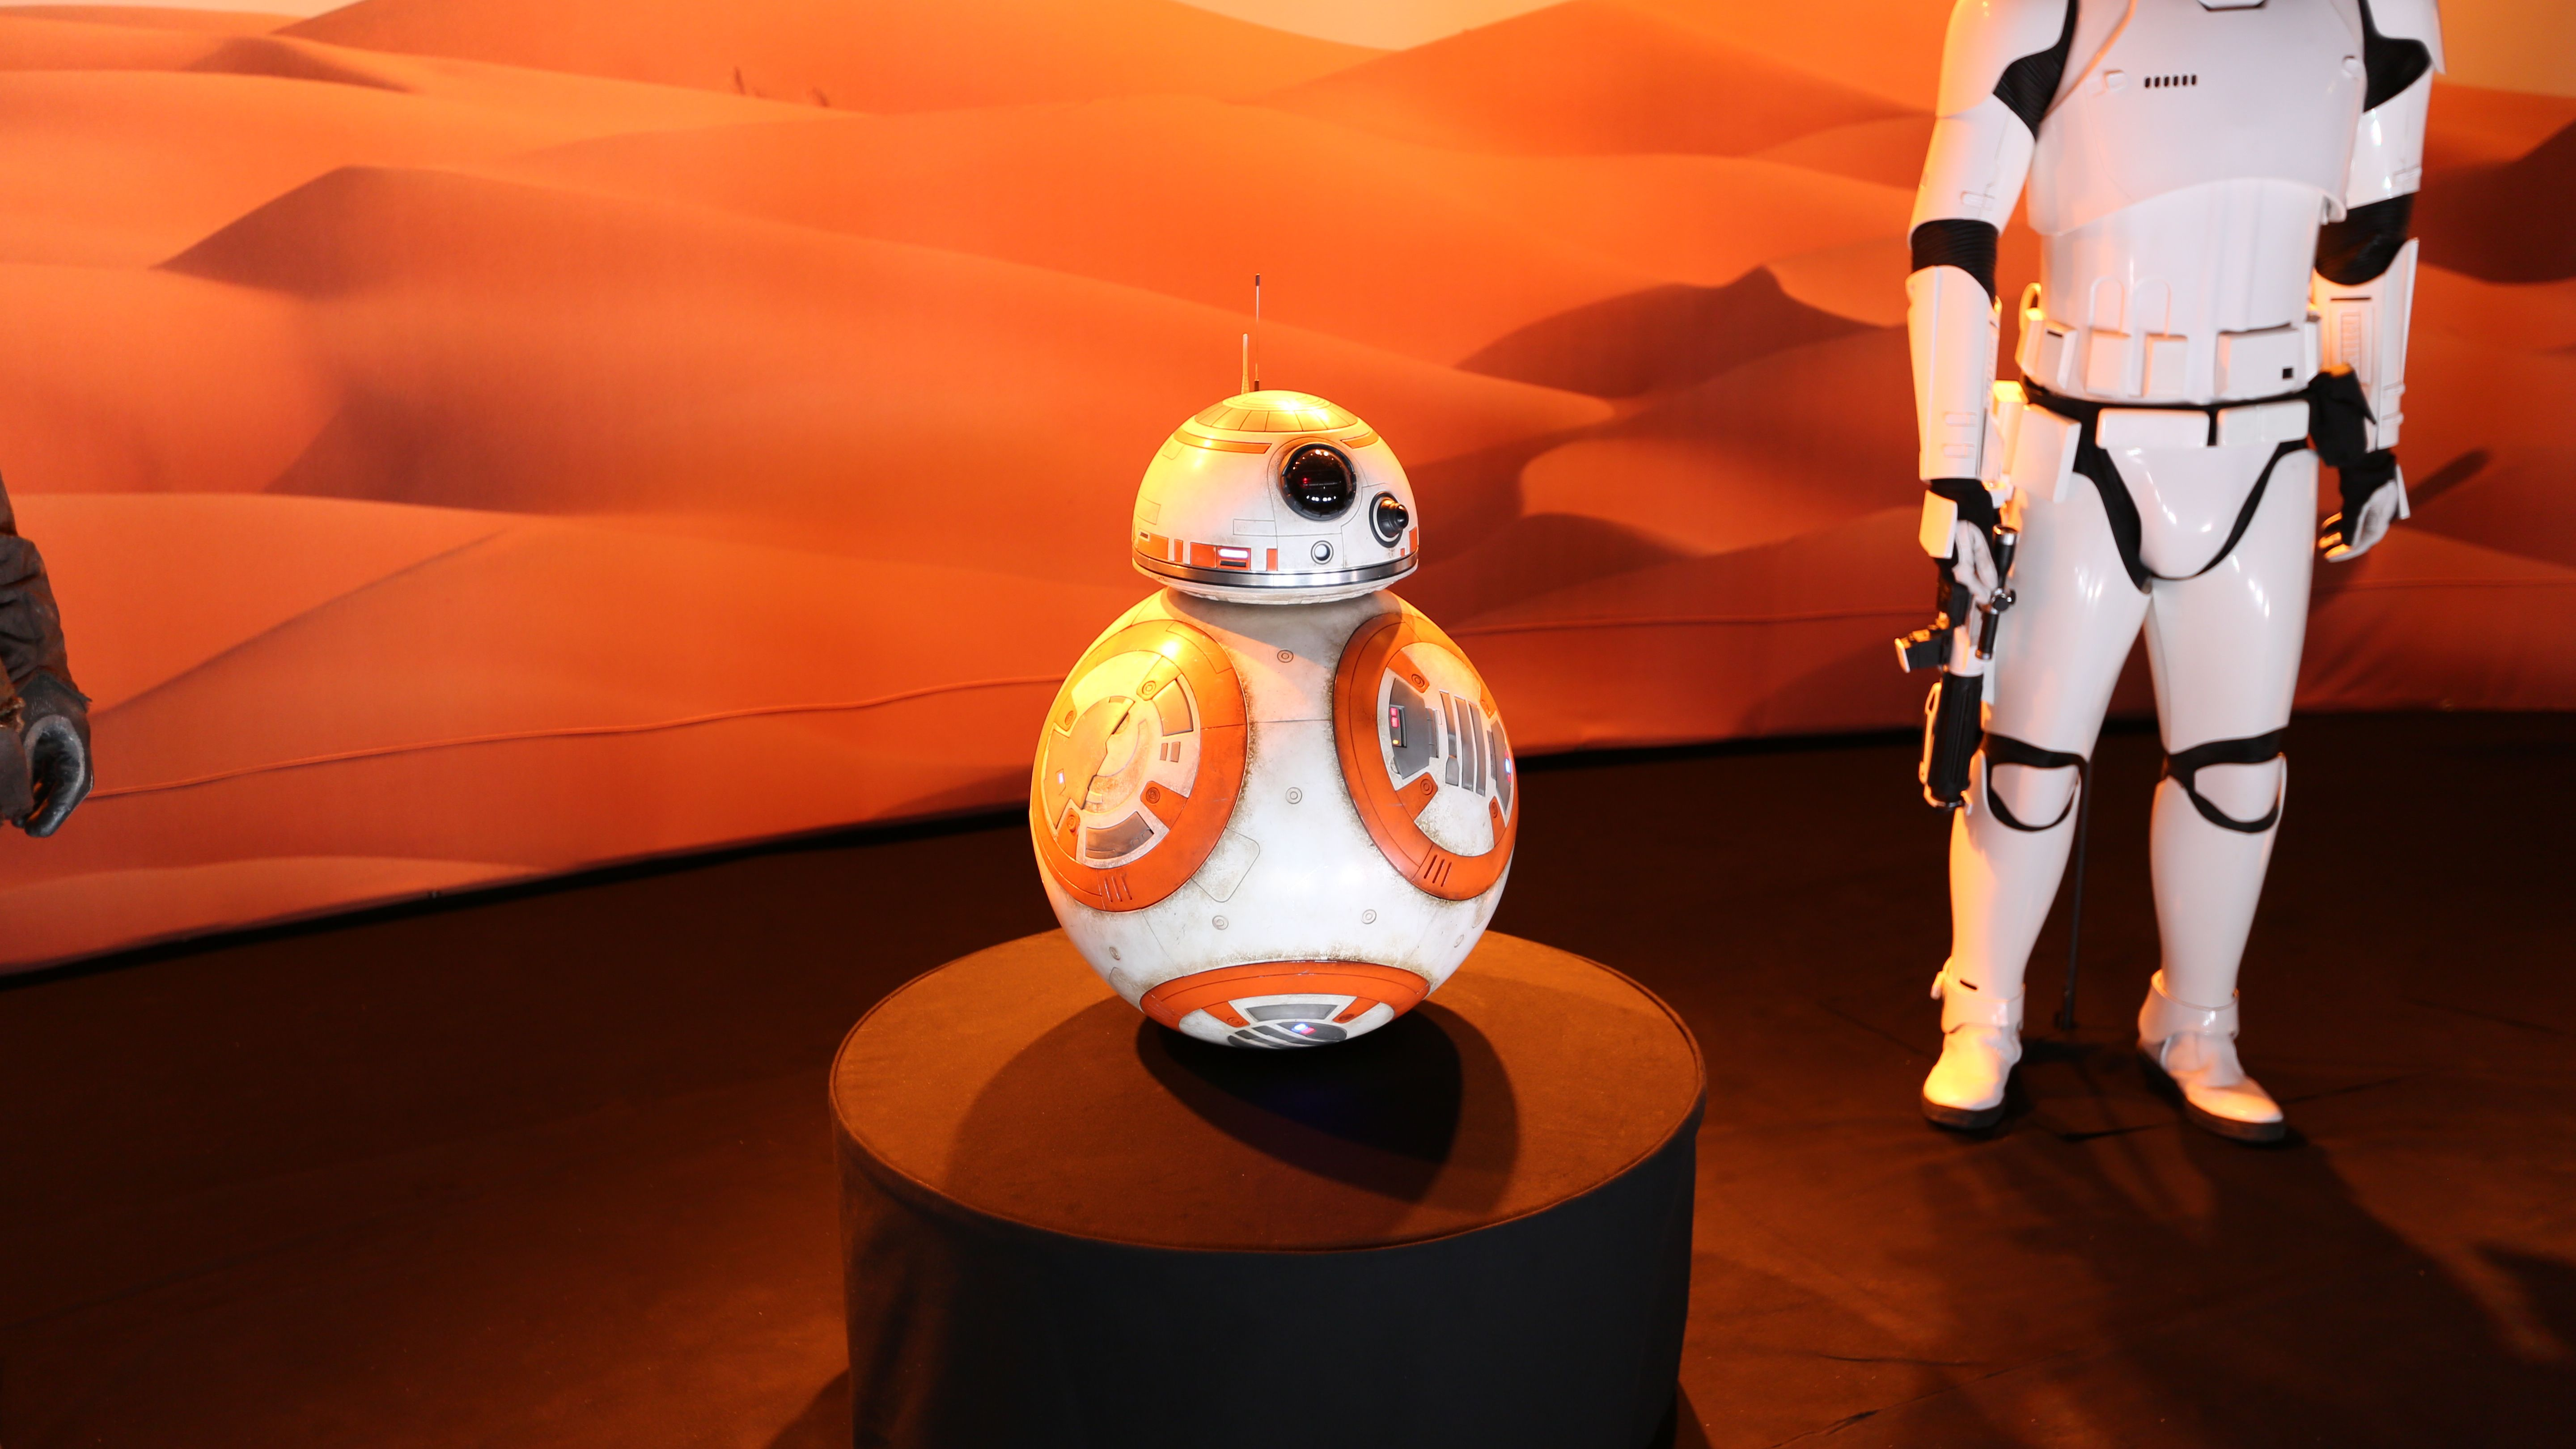 star wars 7 bb8